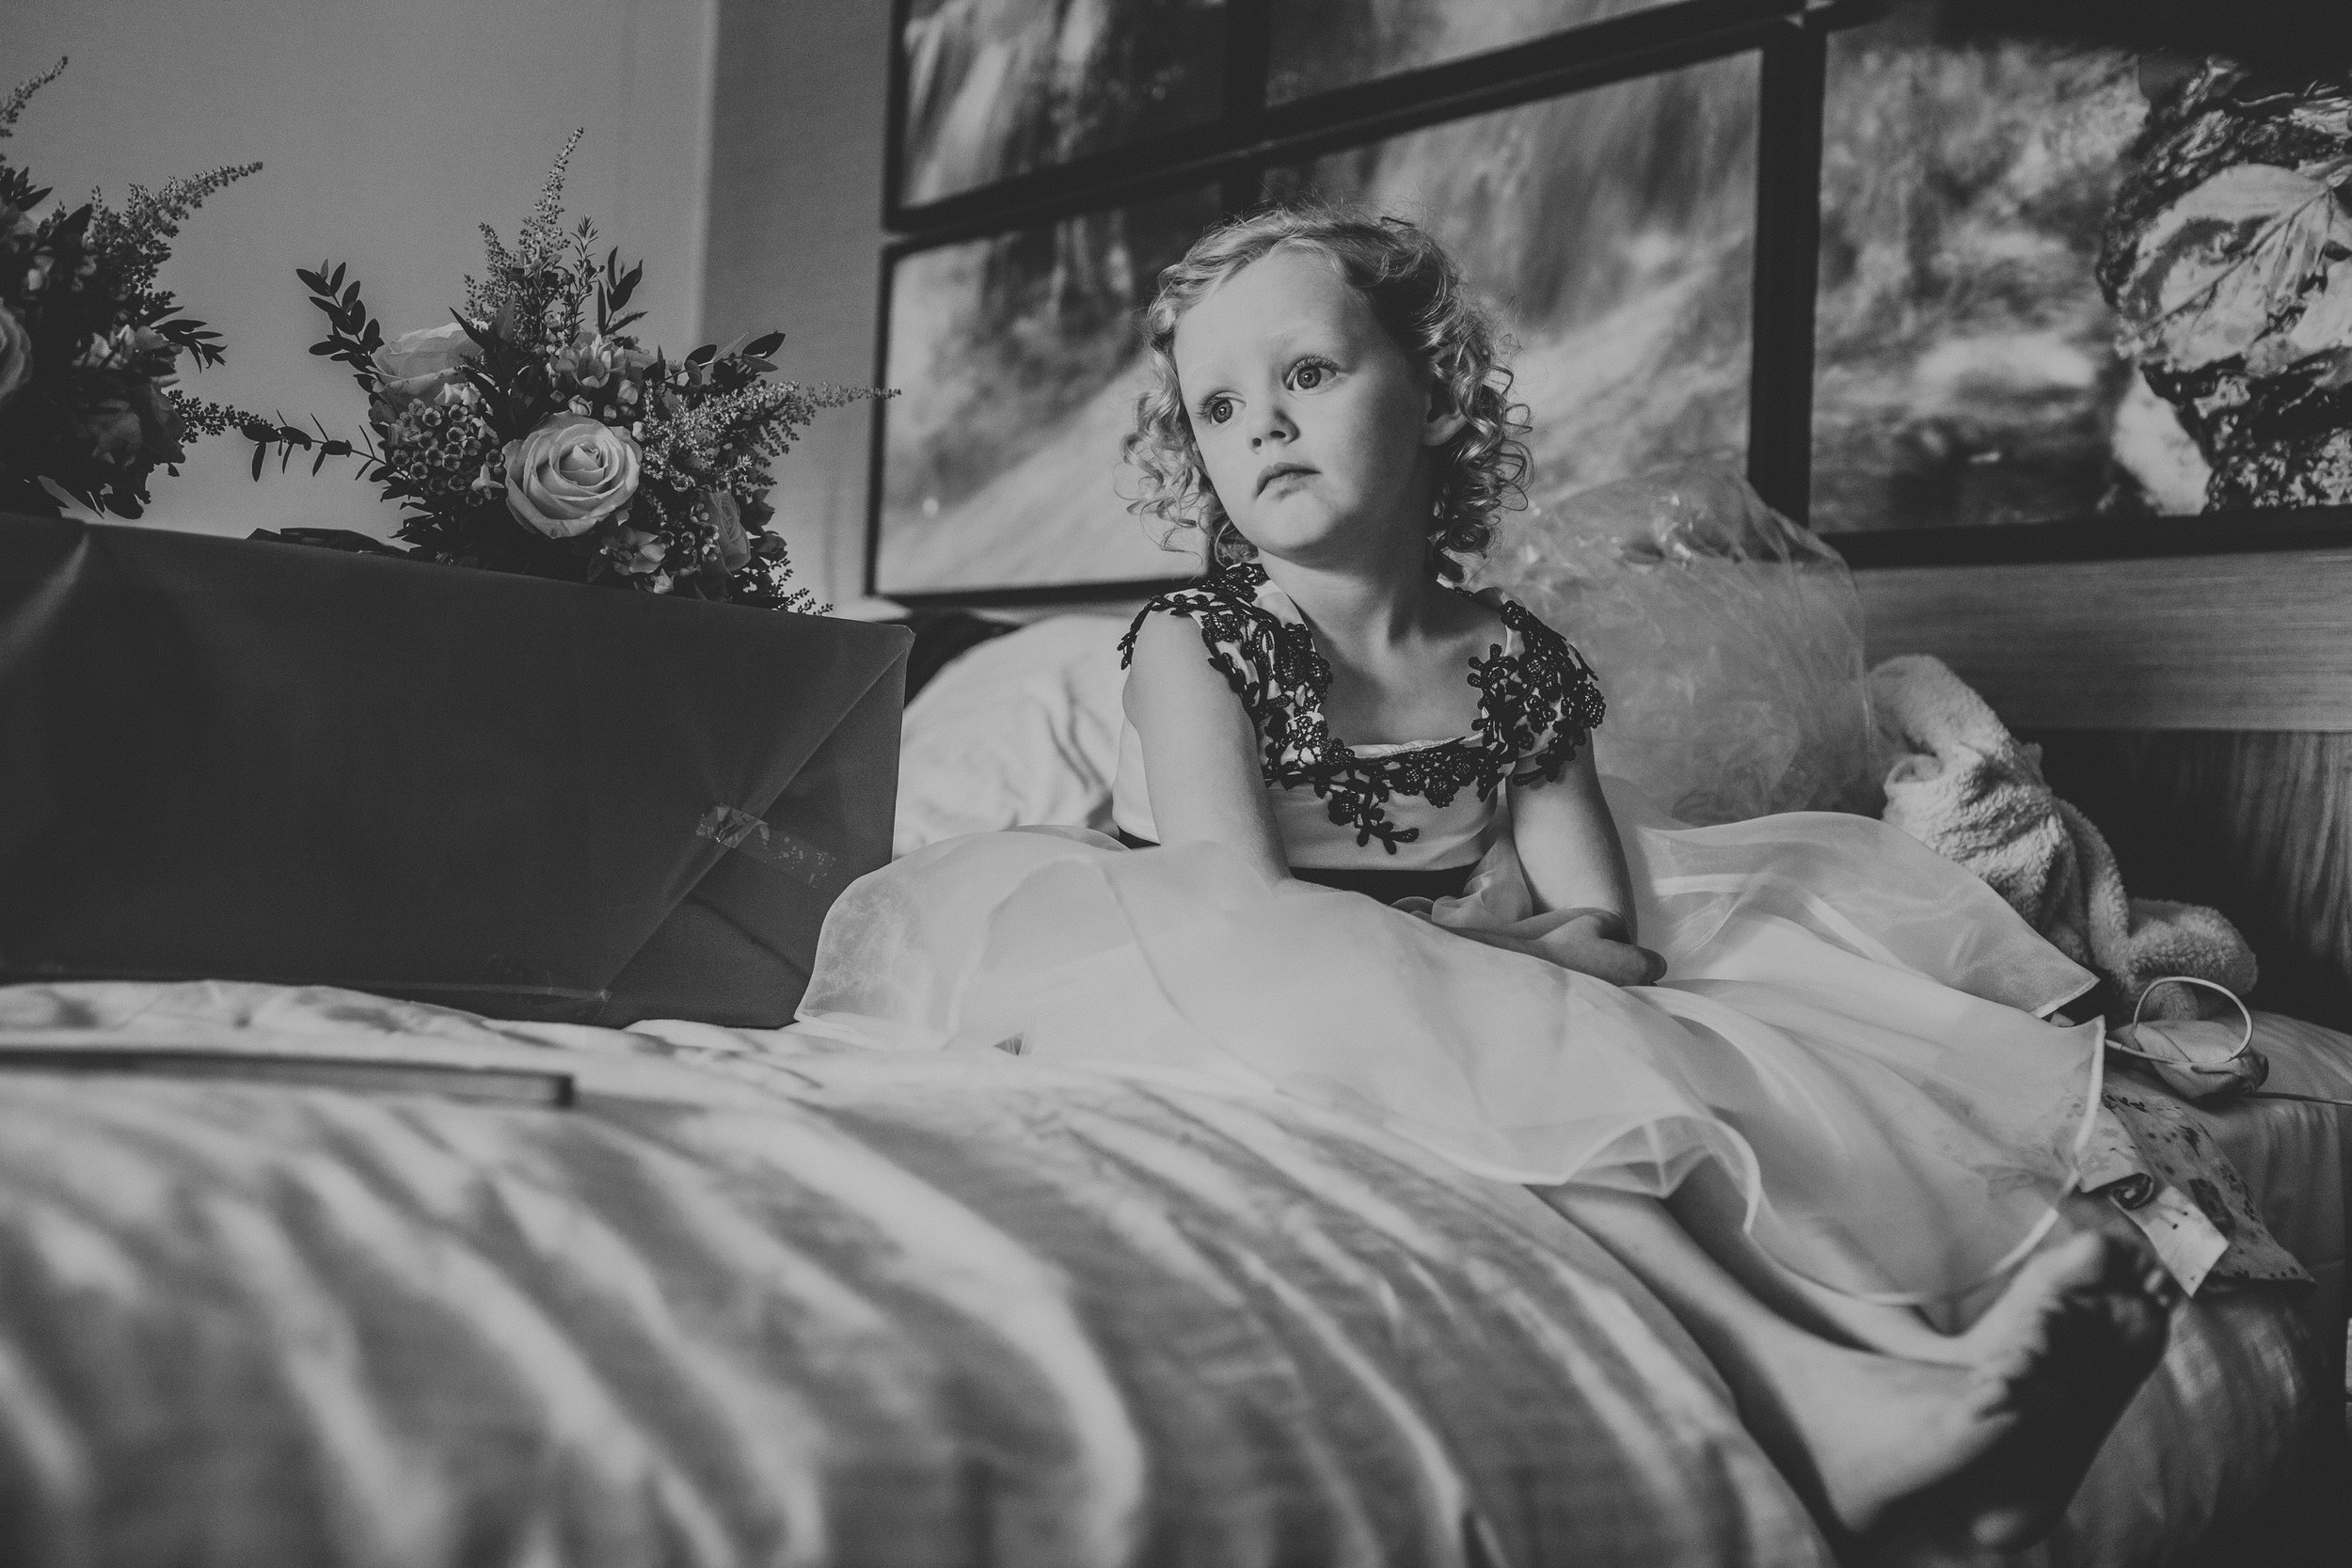 Flower girl sitting on the bed, photograph in black and white.